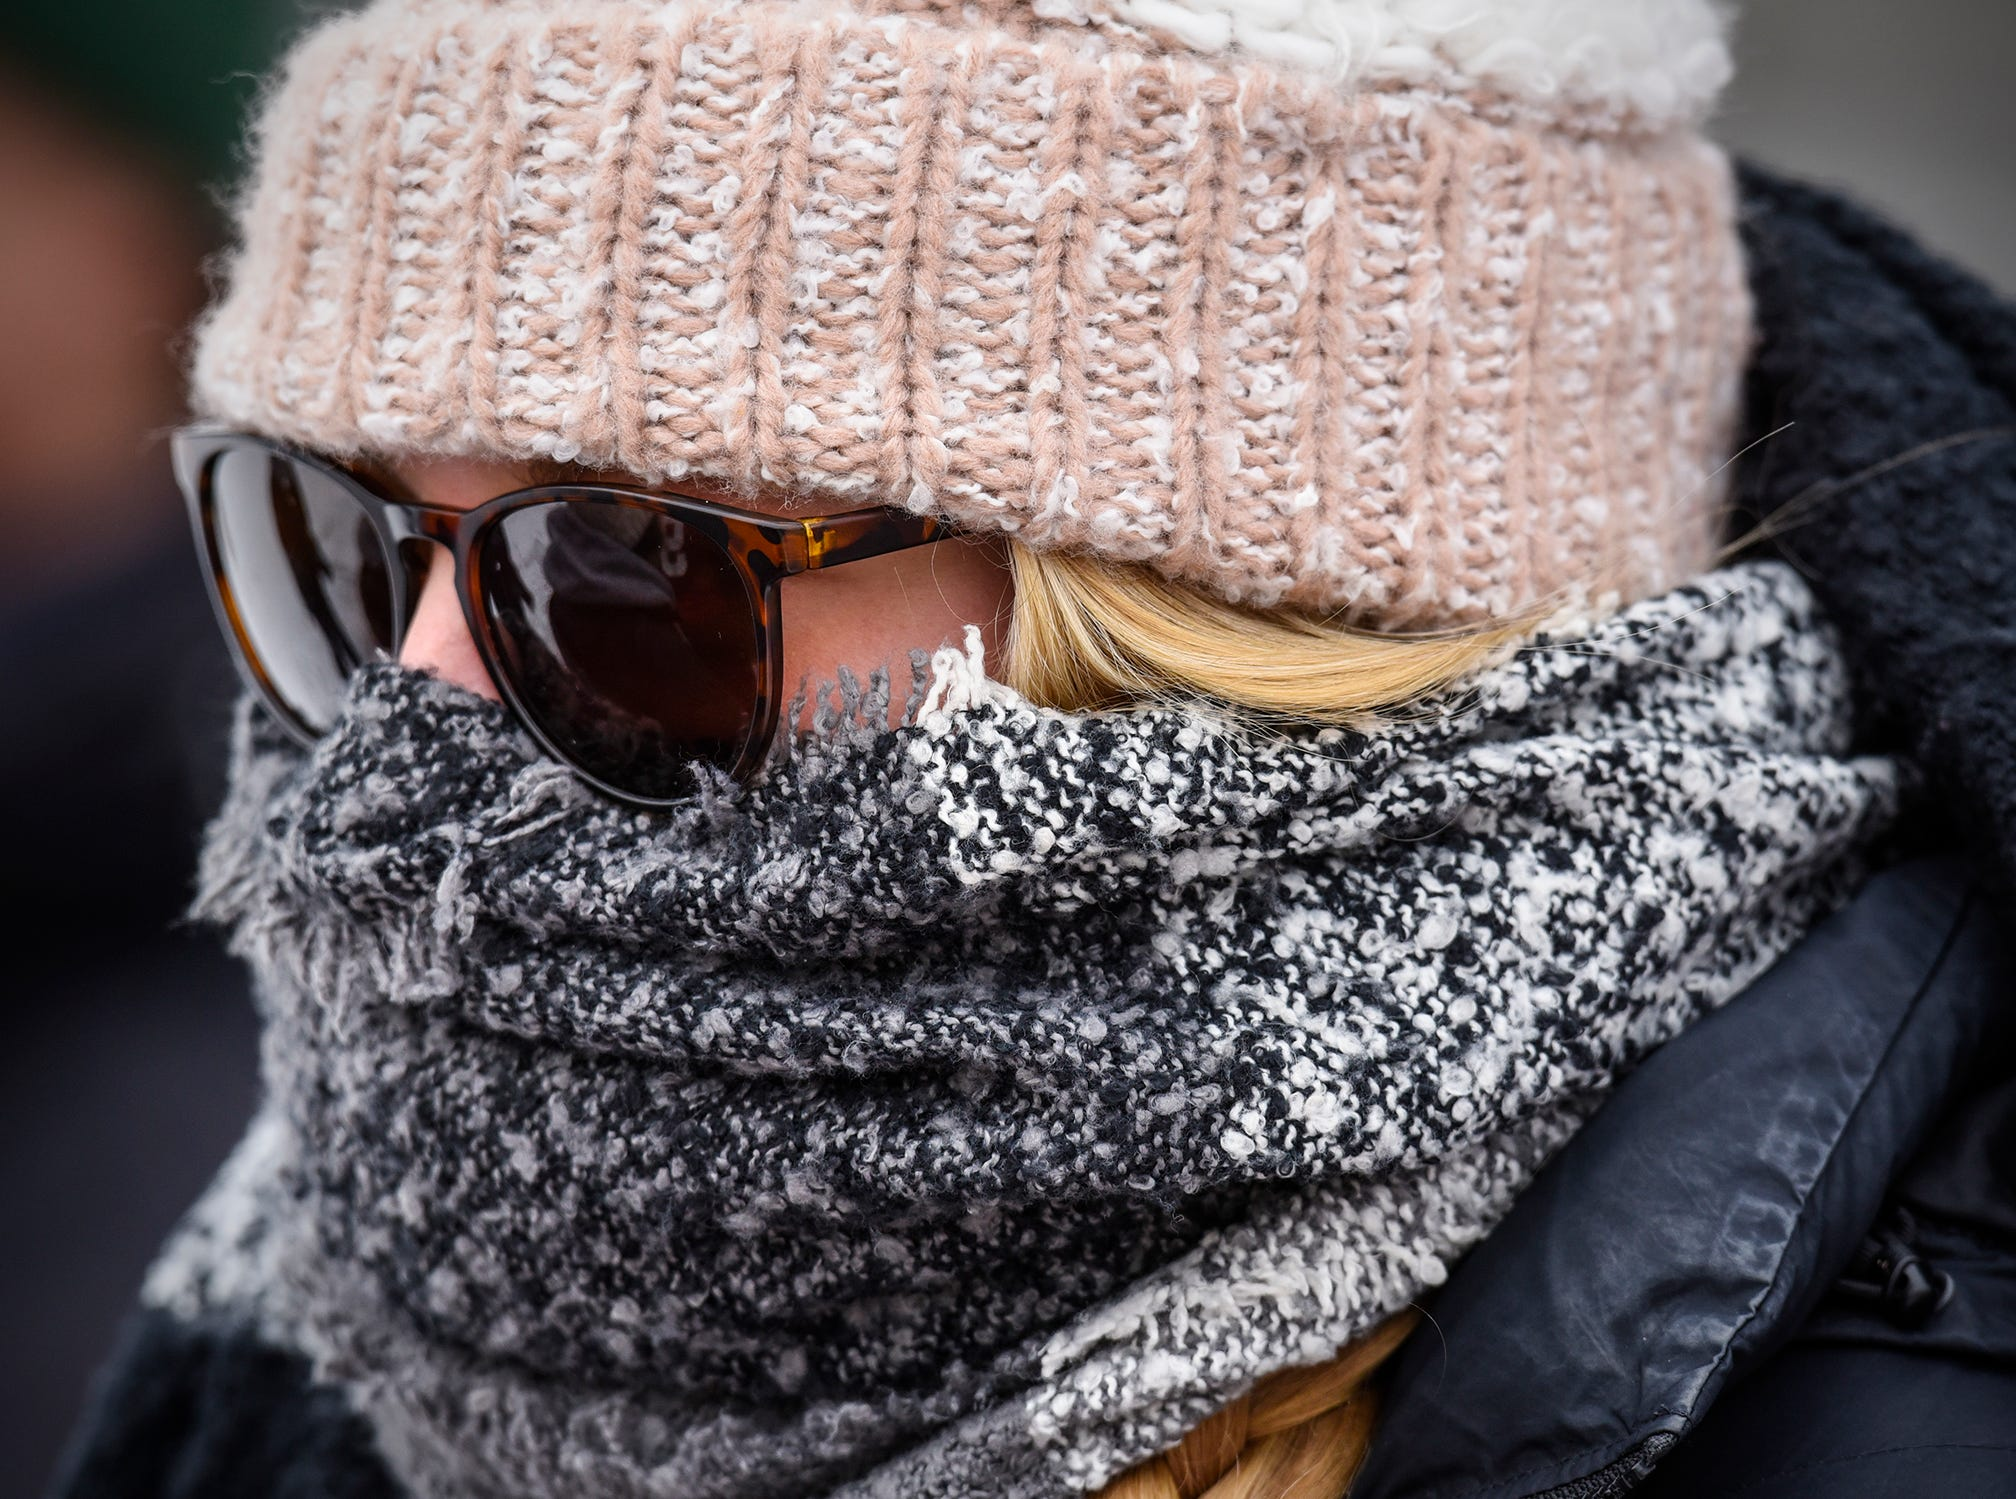 Maddie Koebnick is bundled up against the cold during the Saturday, Nov. 10, game at Clemens Stadium in Collegeville.